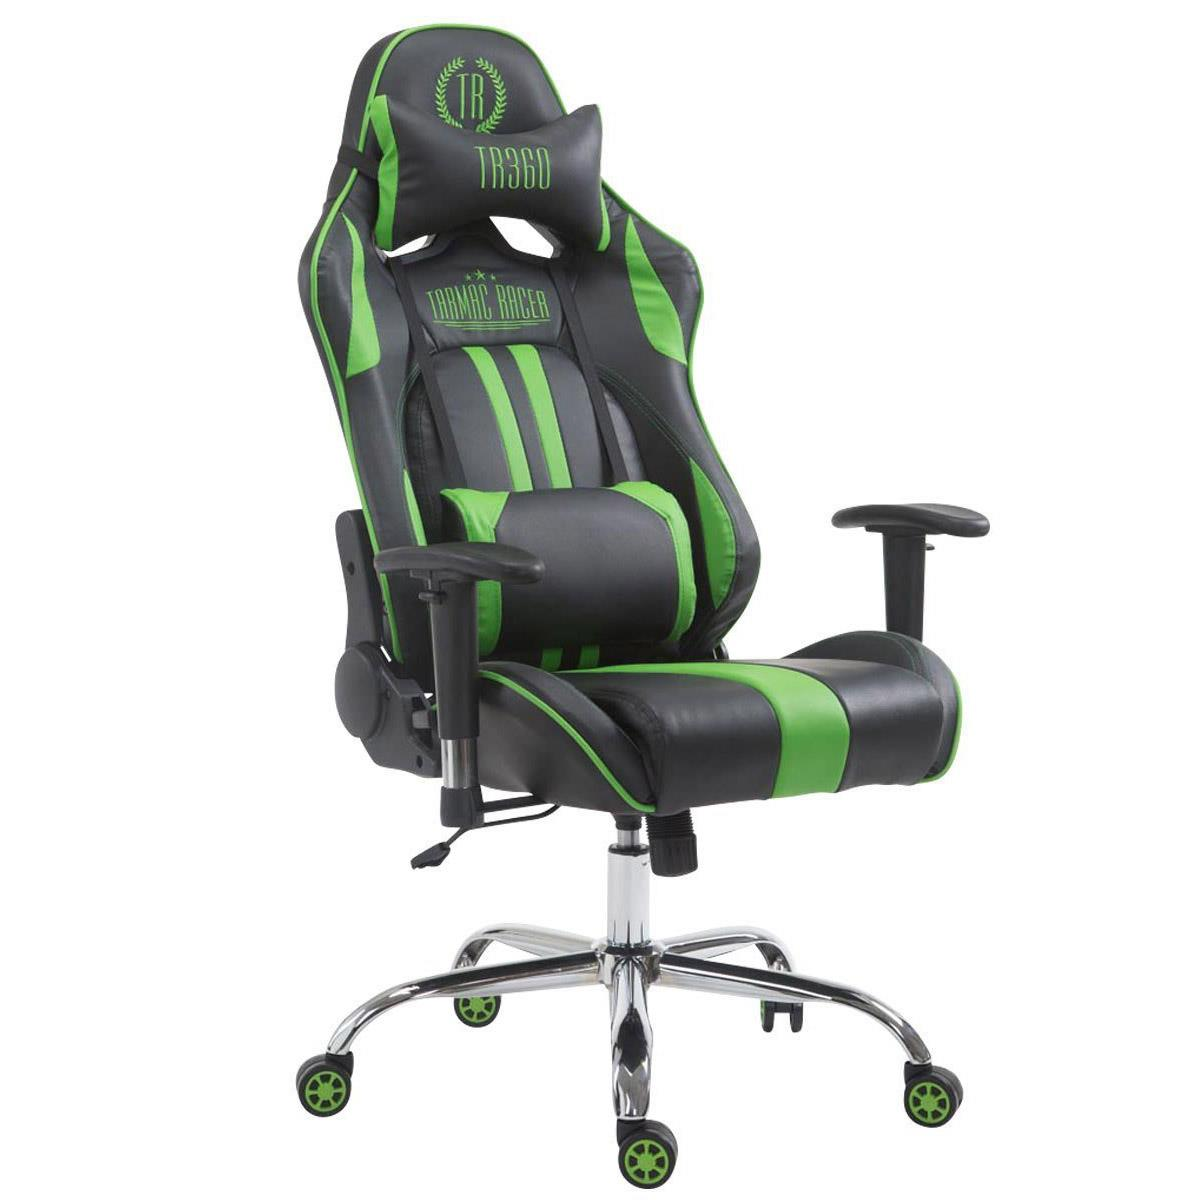 Silla Gaming LOGAN, Respaldo Reclinable, Cojines Incluidos, Base de Metal, En Negro/Verde